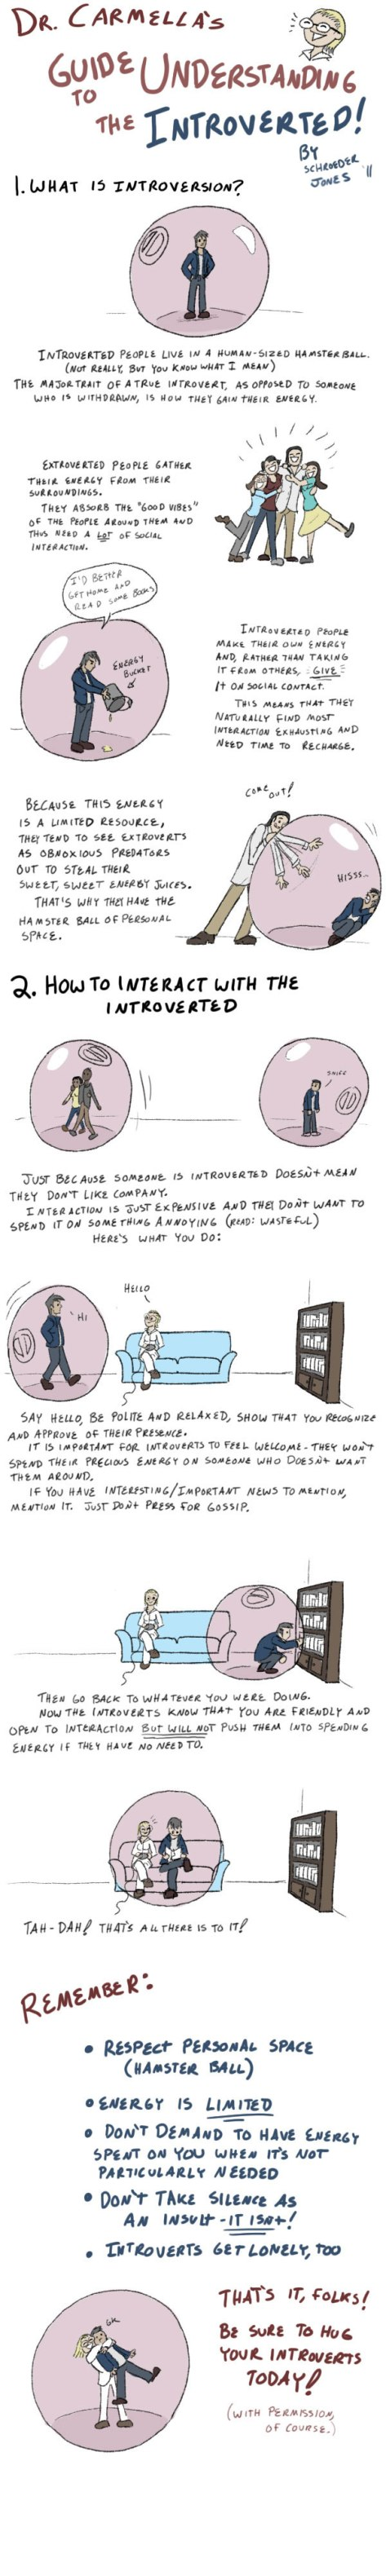 how_to_live_with_introverts_by_schrojones-d4tfoyo